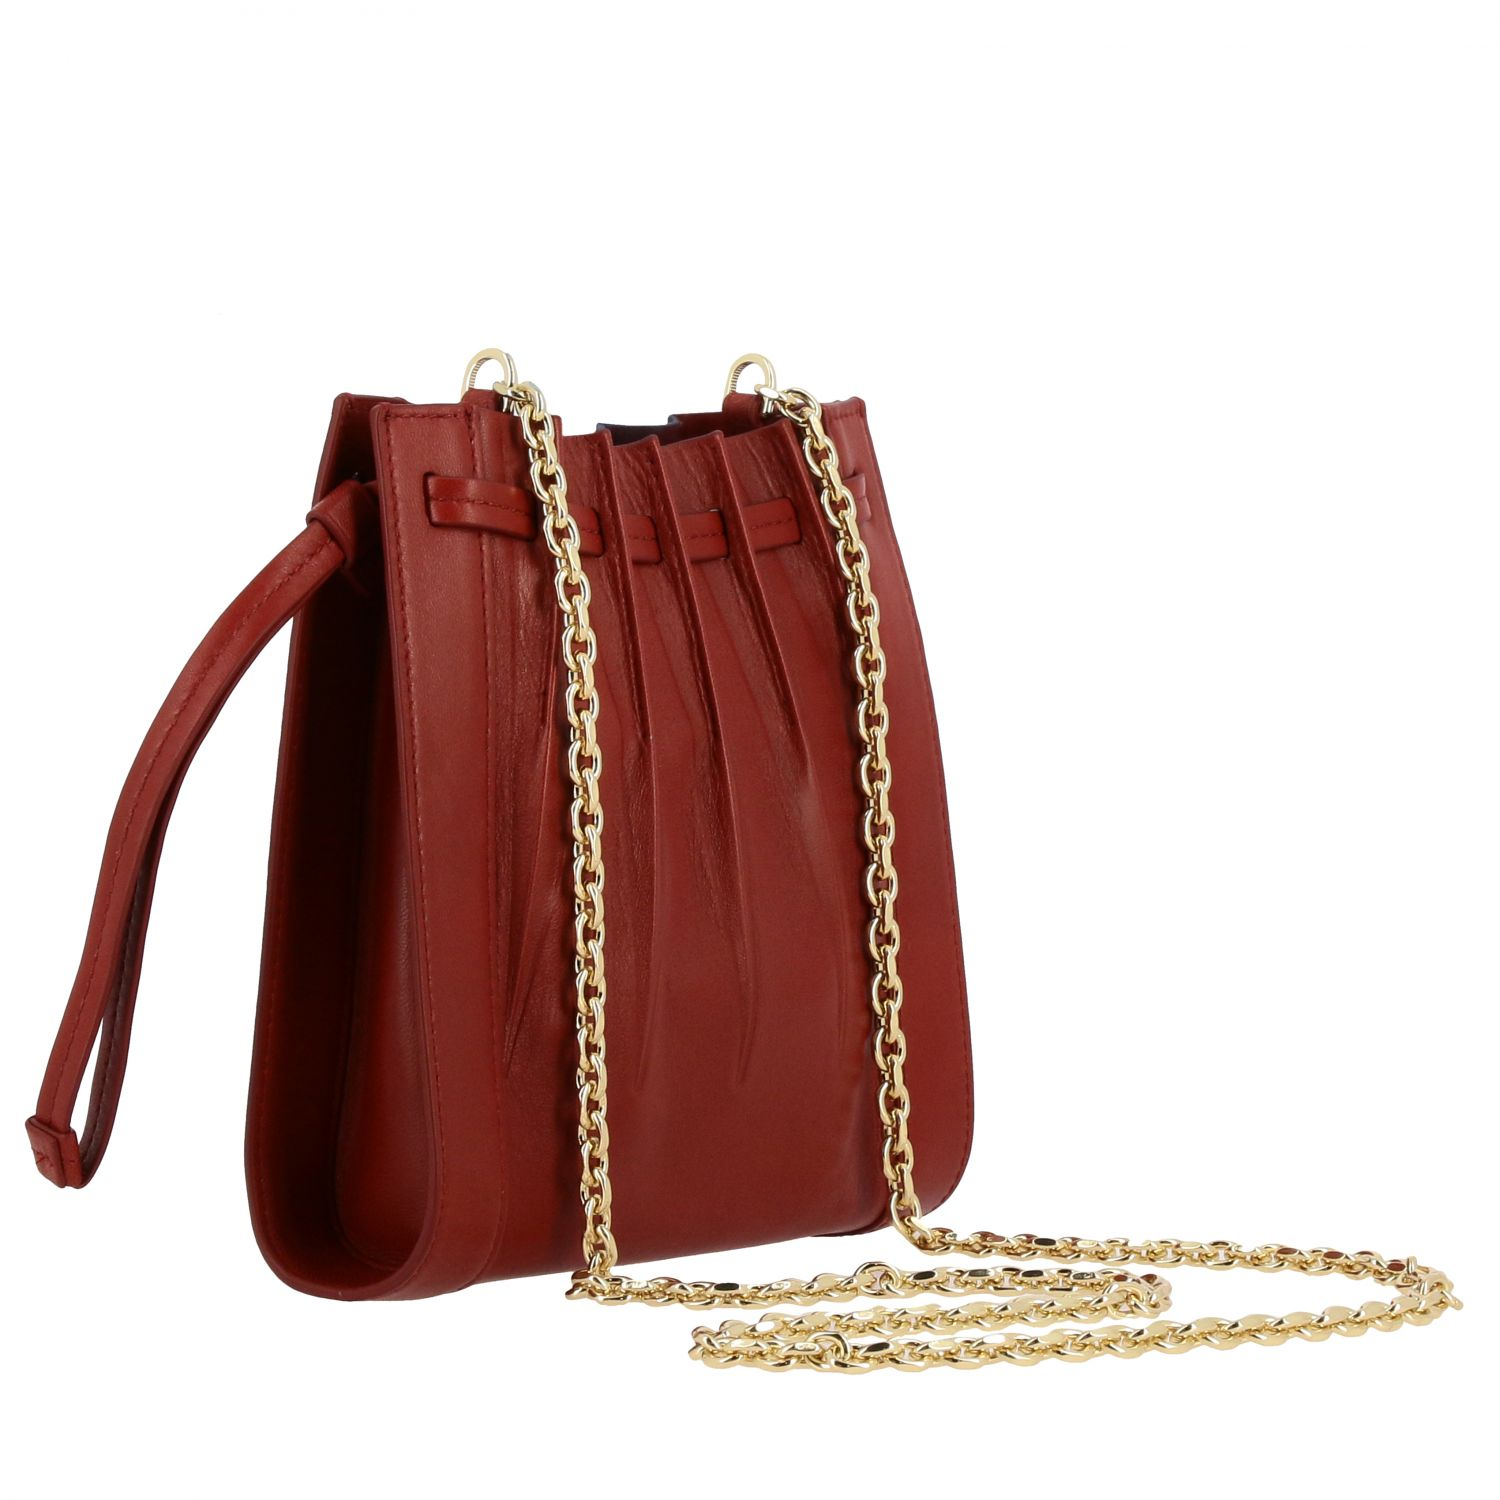 Mini bag 3.1 Phillip Lim: Shoulder bag women 3.1 Phillip Lim red 3